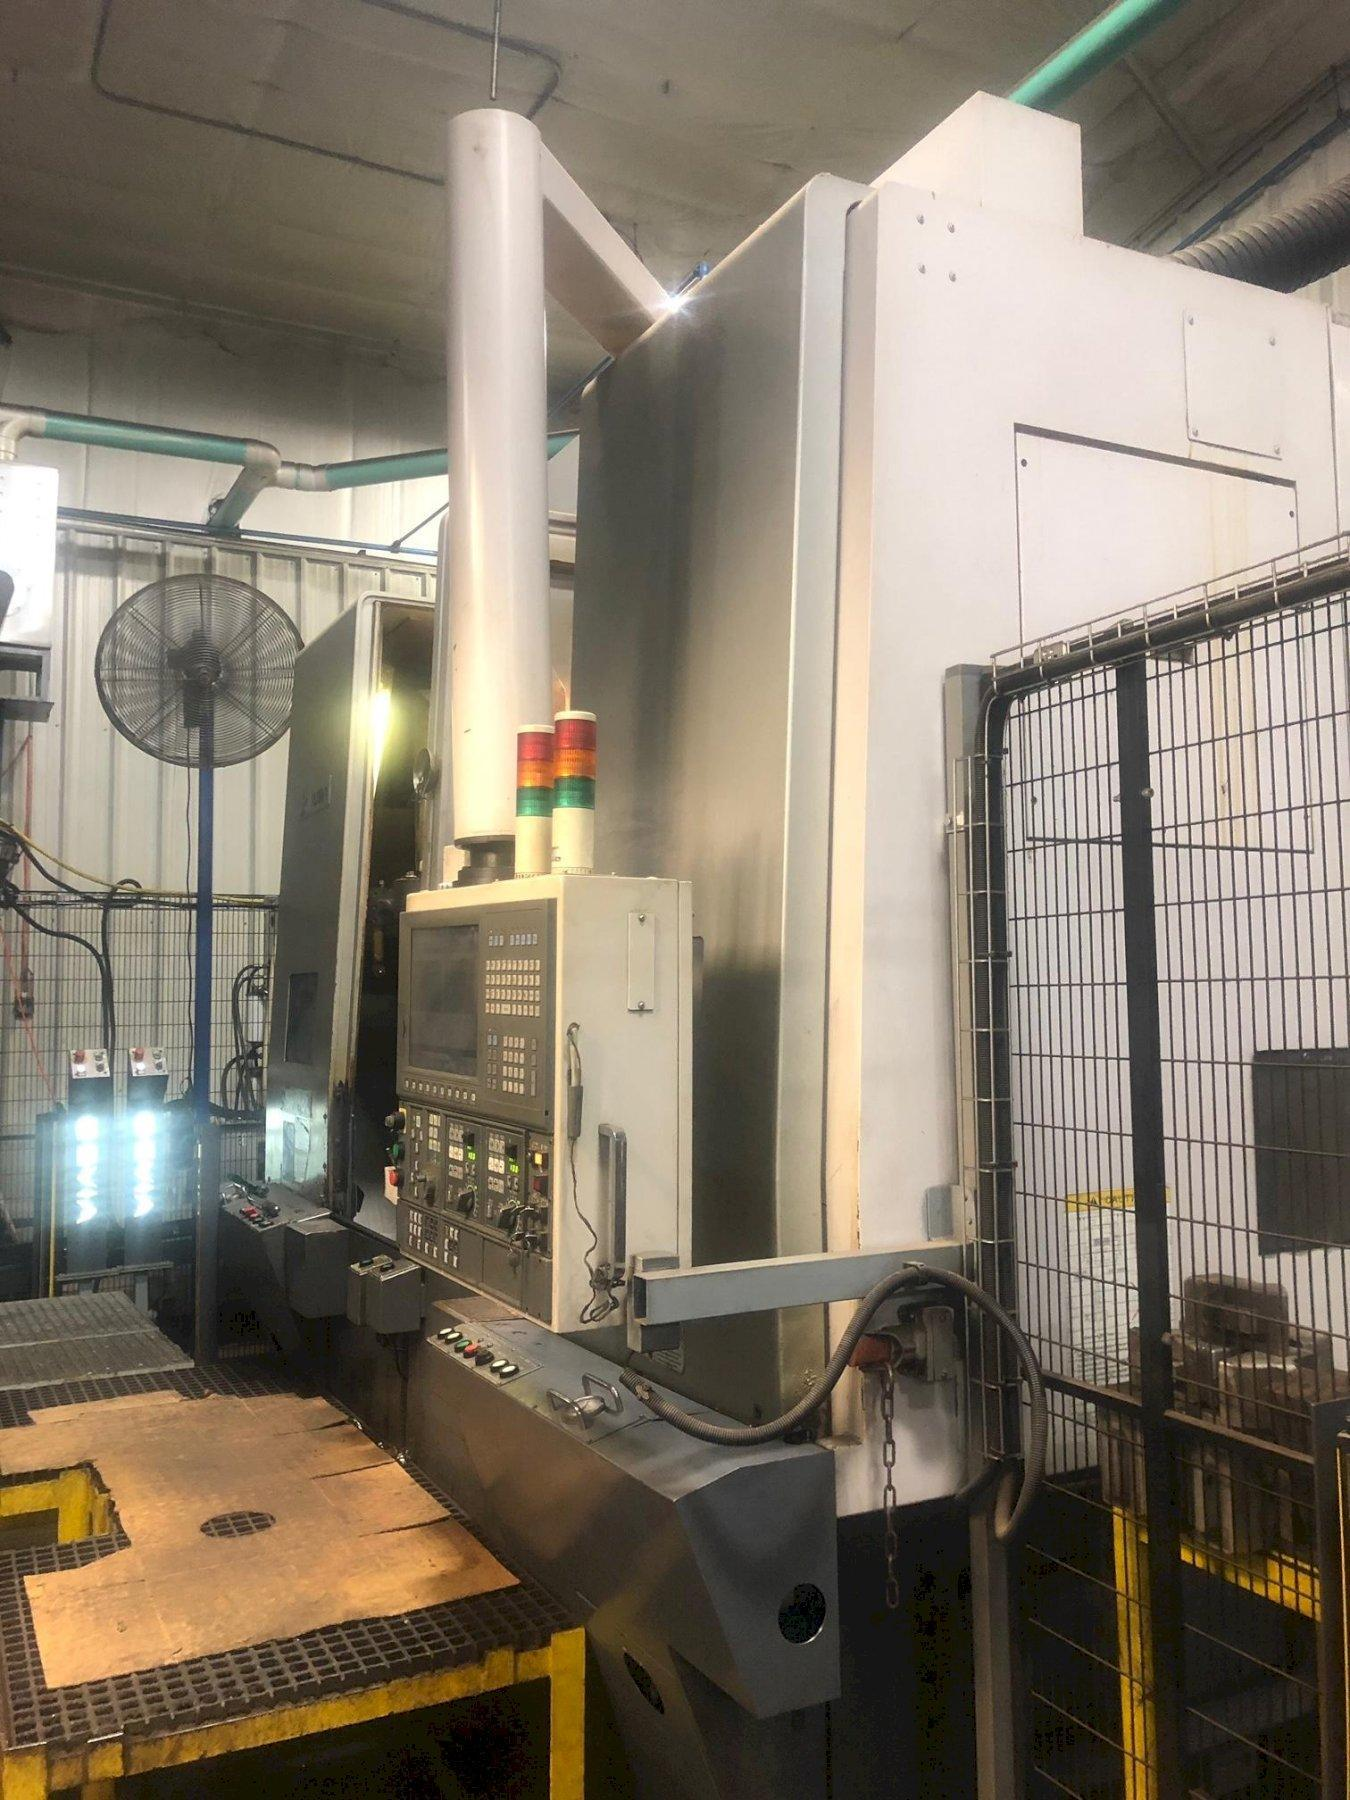 2008 Okuma 2SP-V60 - CNC Twin Spindle Vertical Turret Lathe